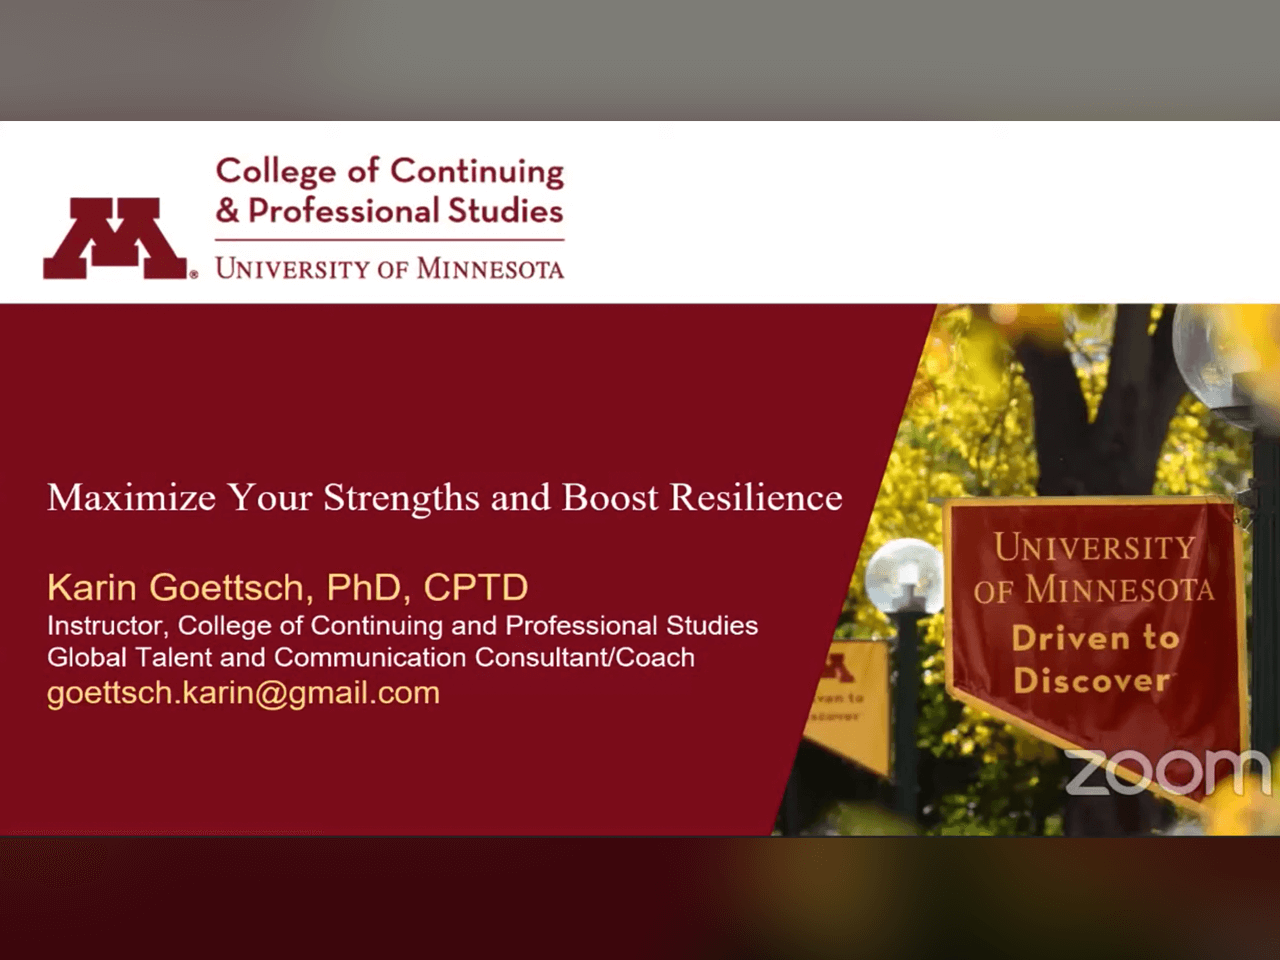 Webinar: Maximize Your Strengths and Boost Resilience